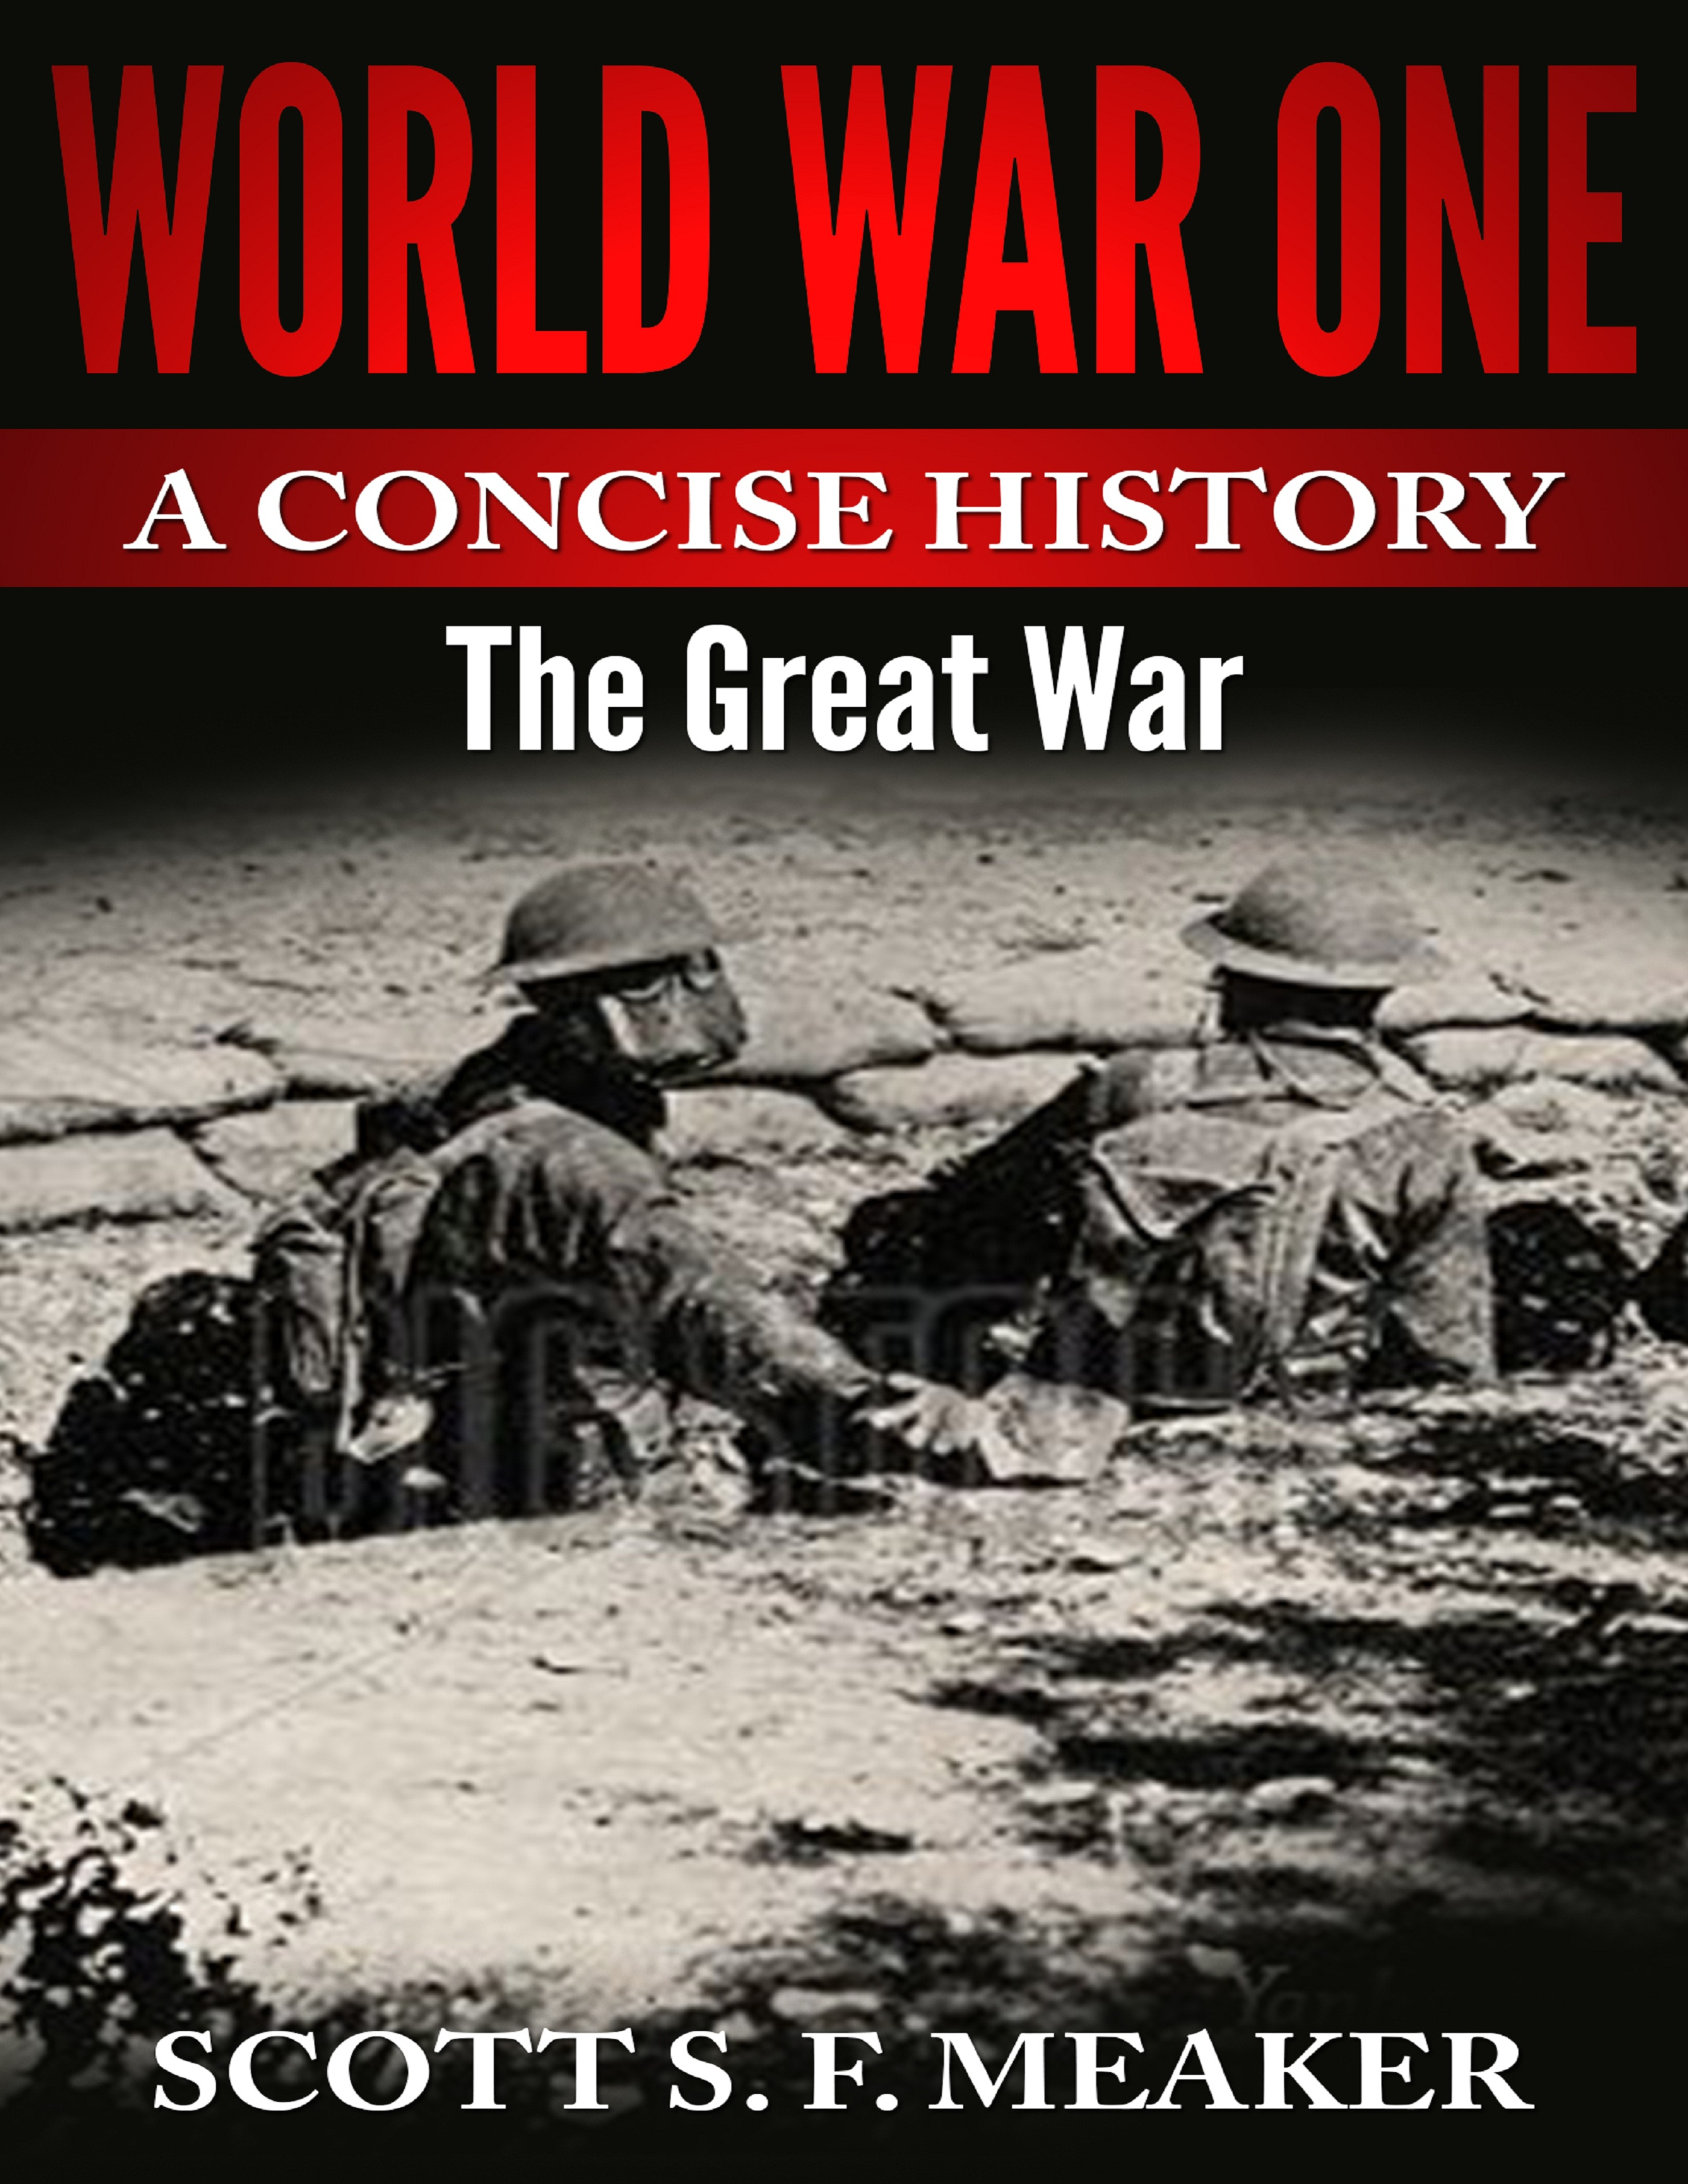 World war one: a concise history - the great war